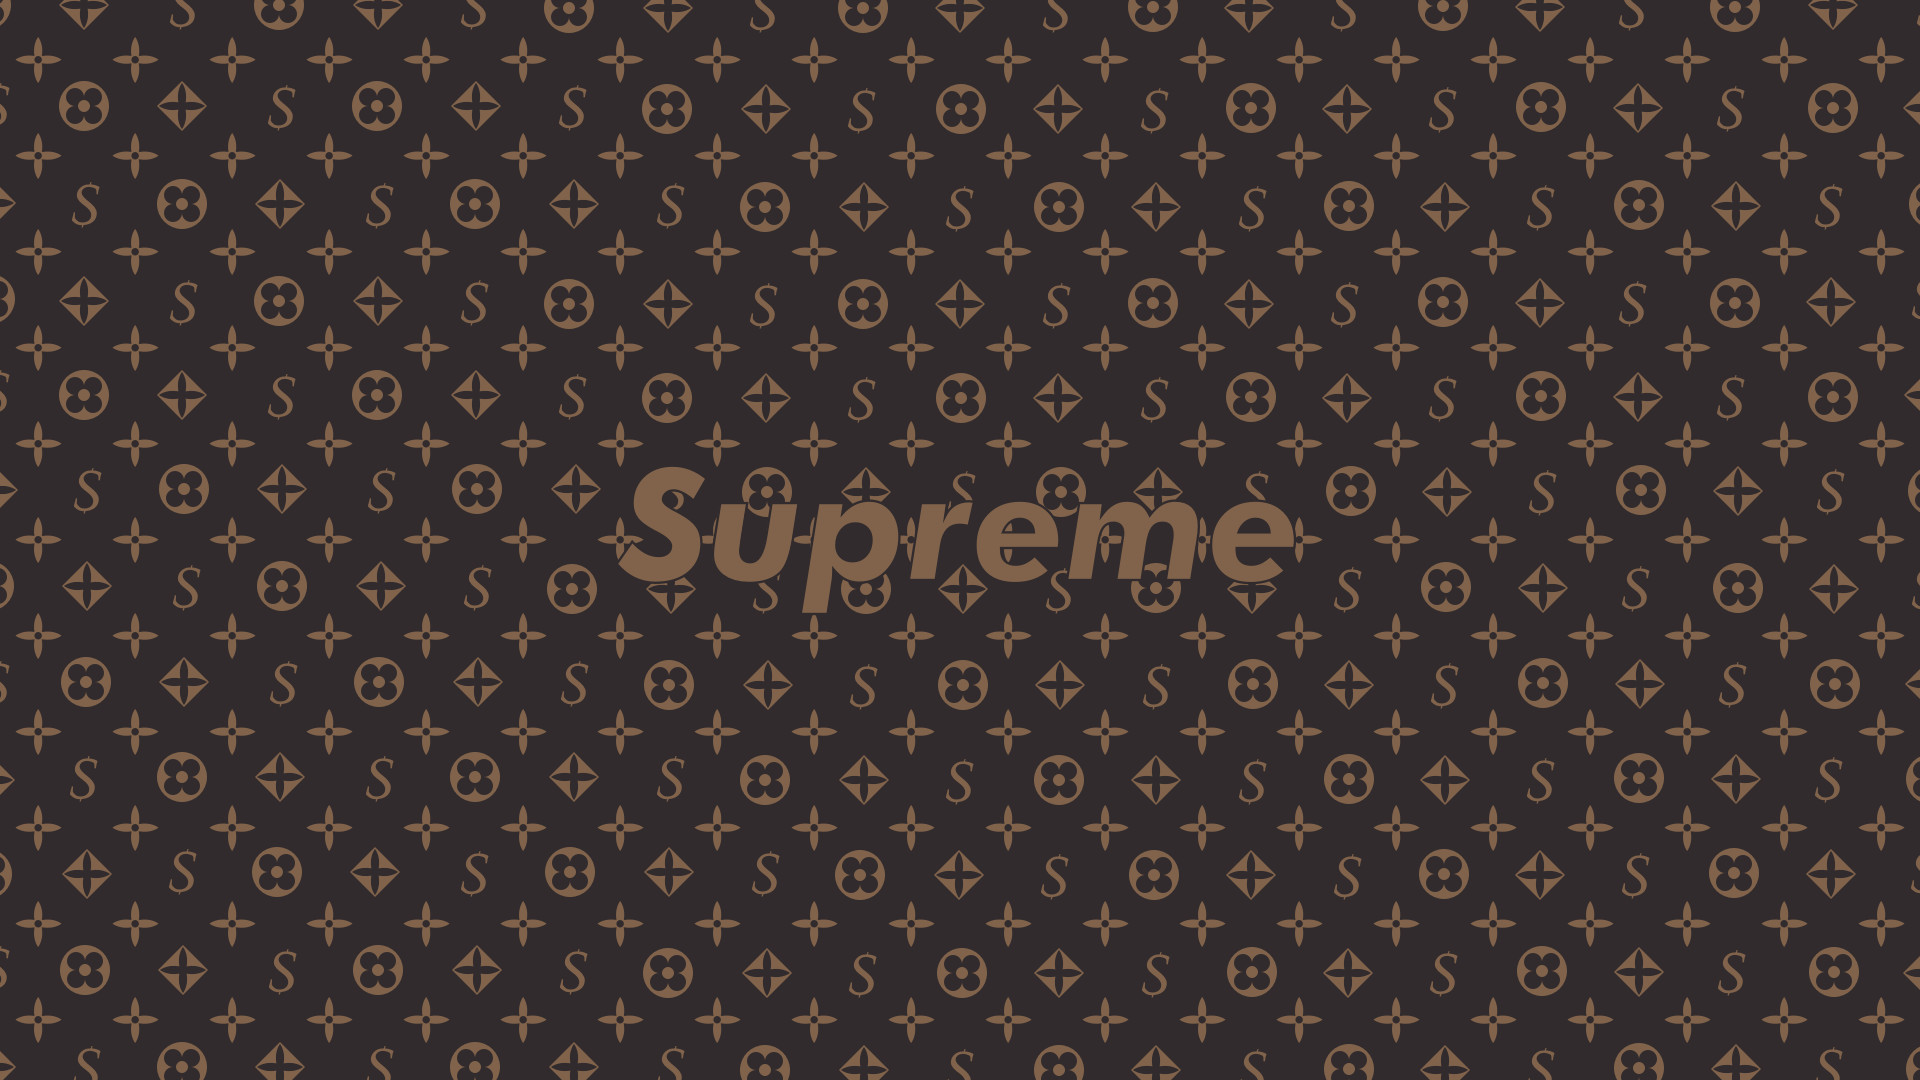 Lv wallpaper 72 images 1920x1080 some supreme x lv wallpapers i made voltagebd Choice Image